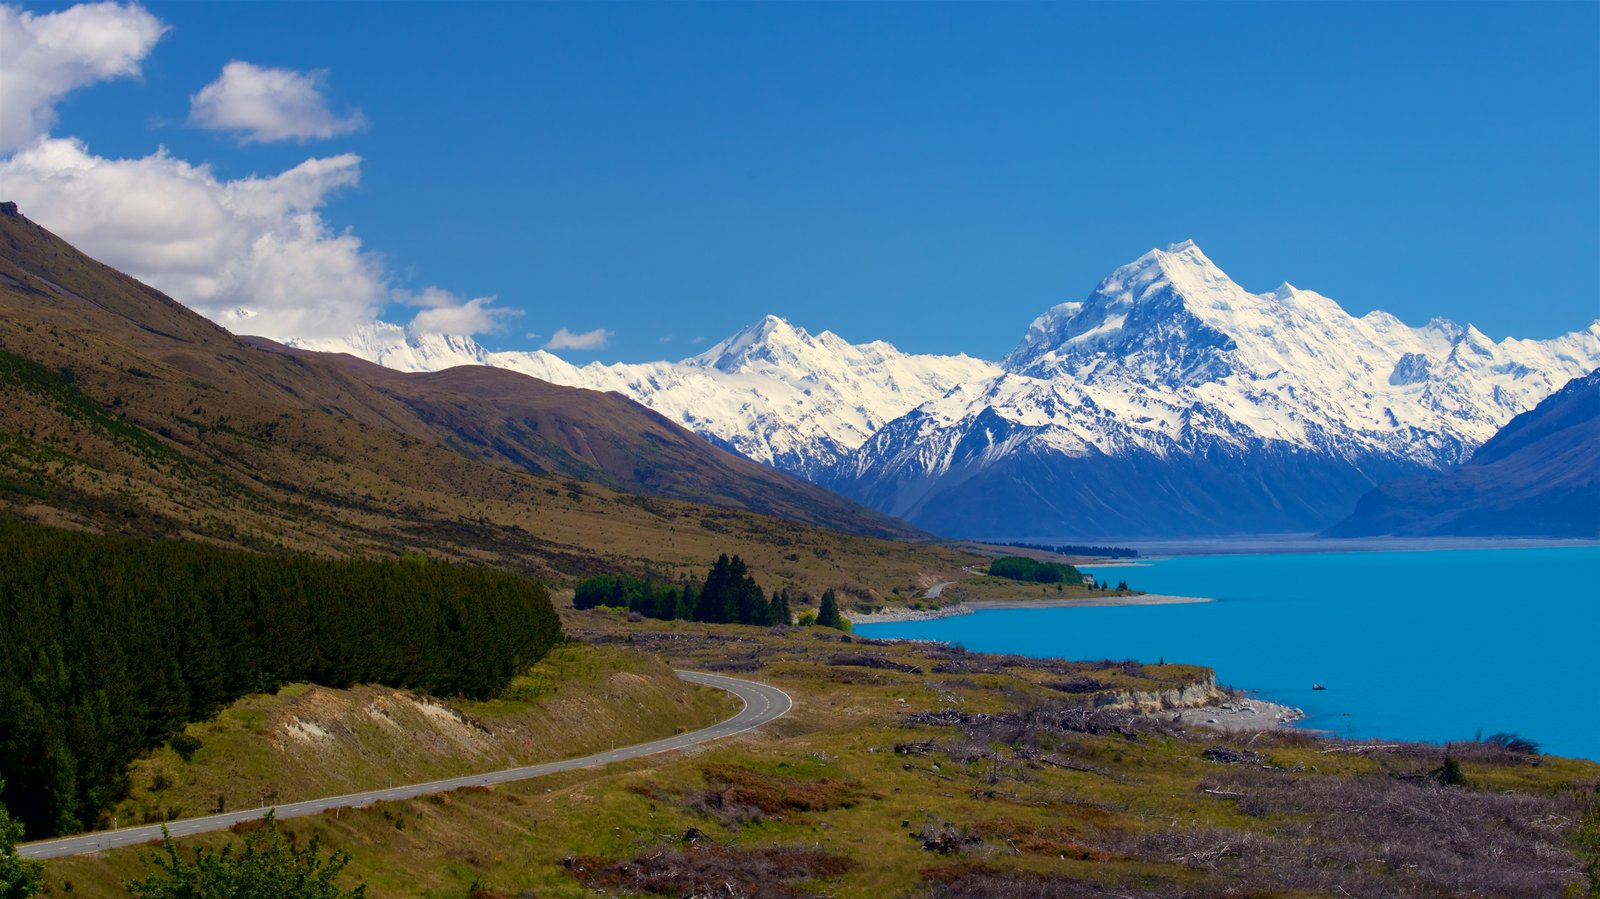 Mount Cook National Park which includes mountains, a lake or waterhole and snow